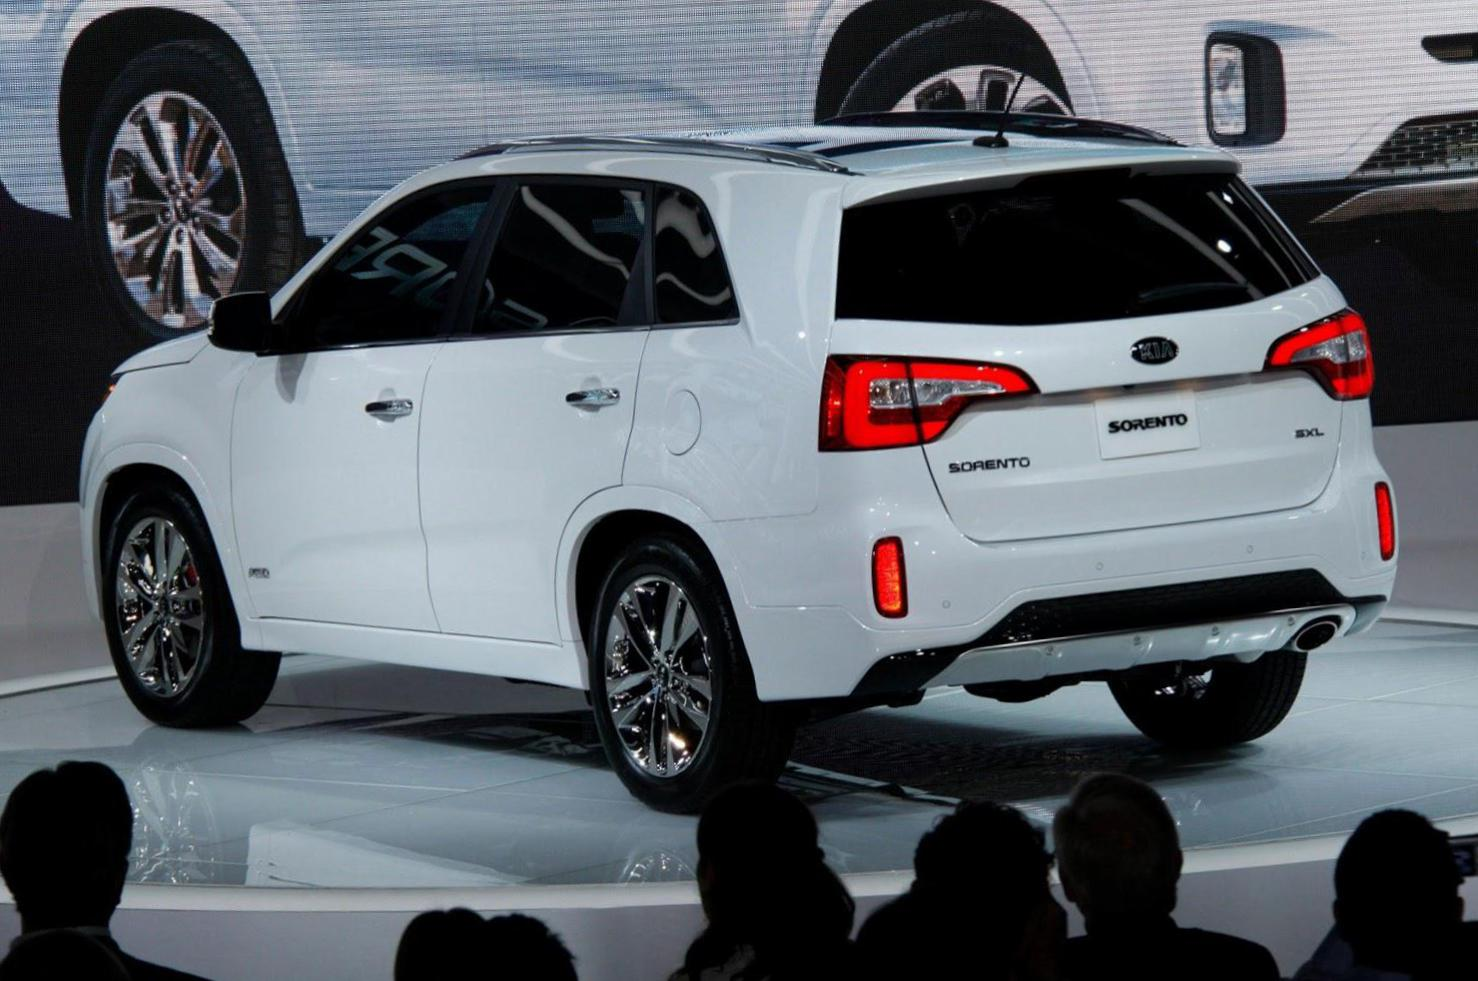 KIA Sorento how mach hatchback